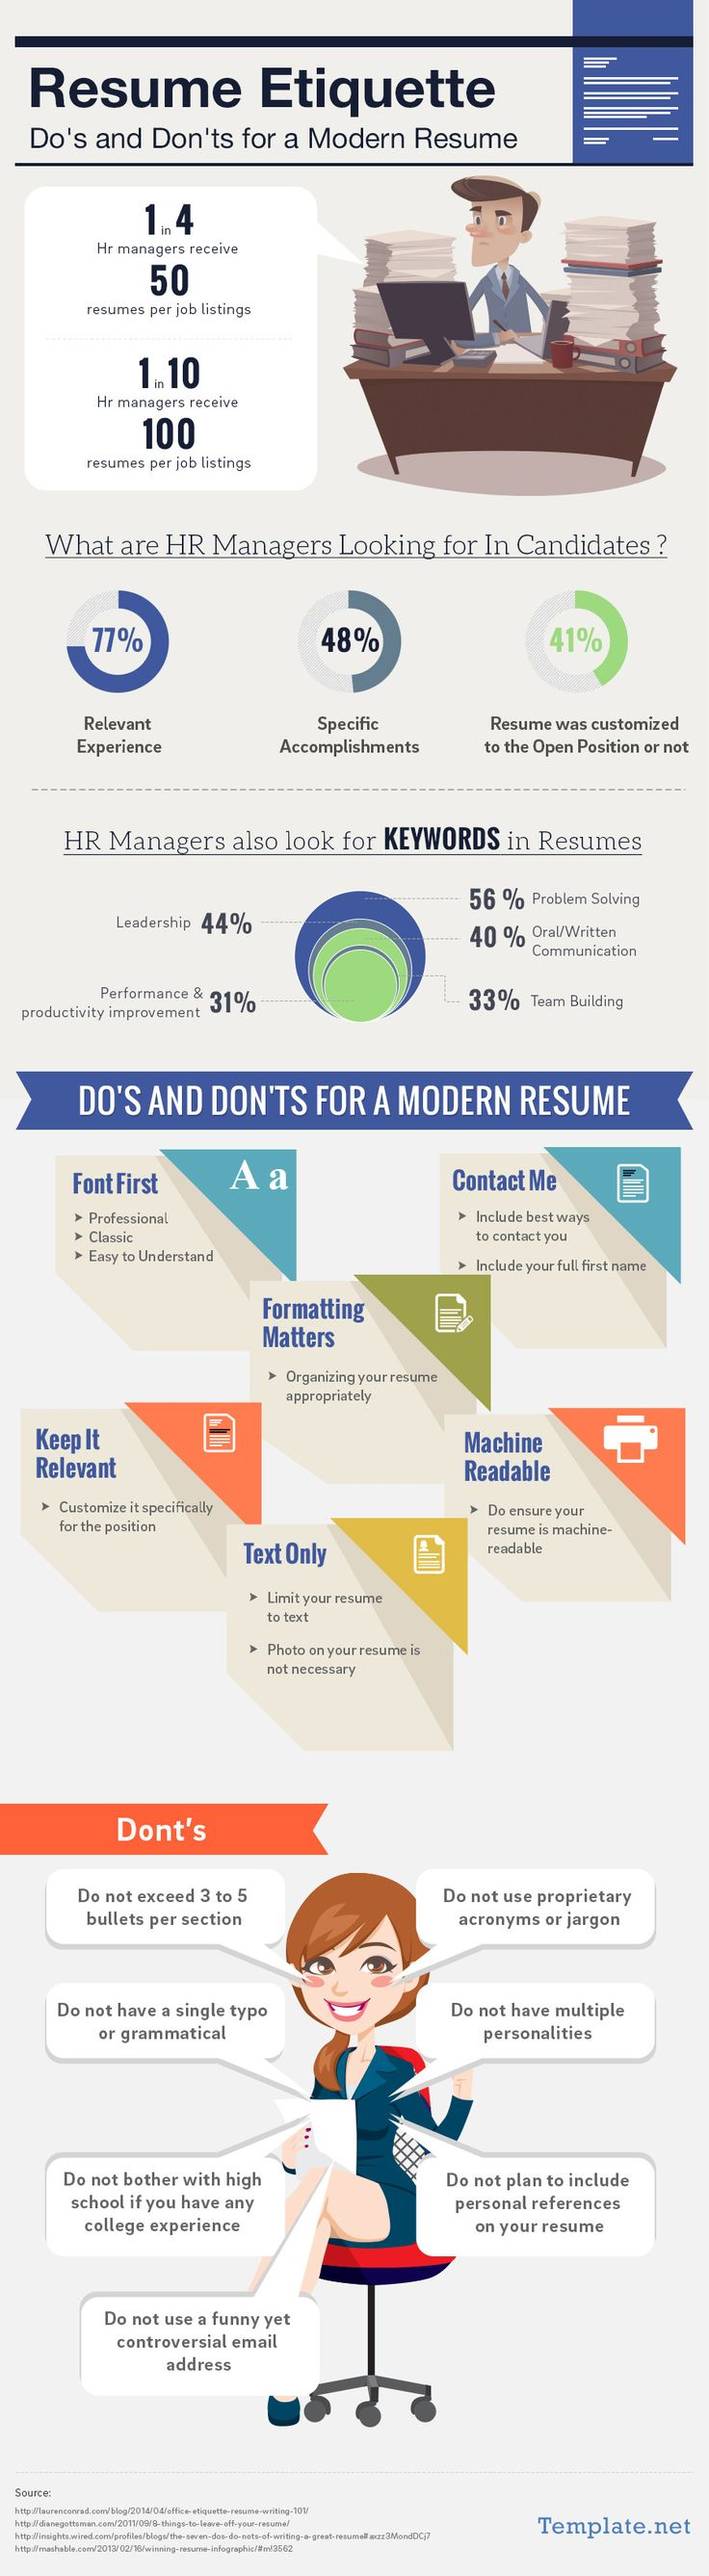 resume etiquette dos and donts for a modern resume